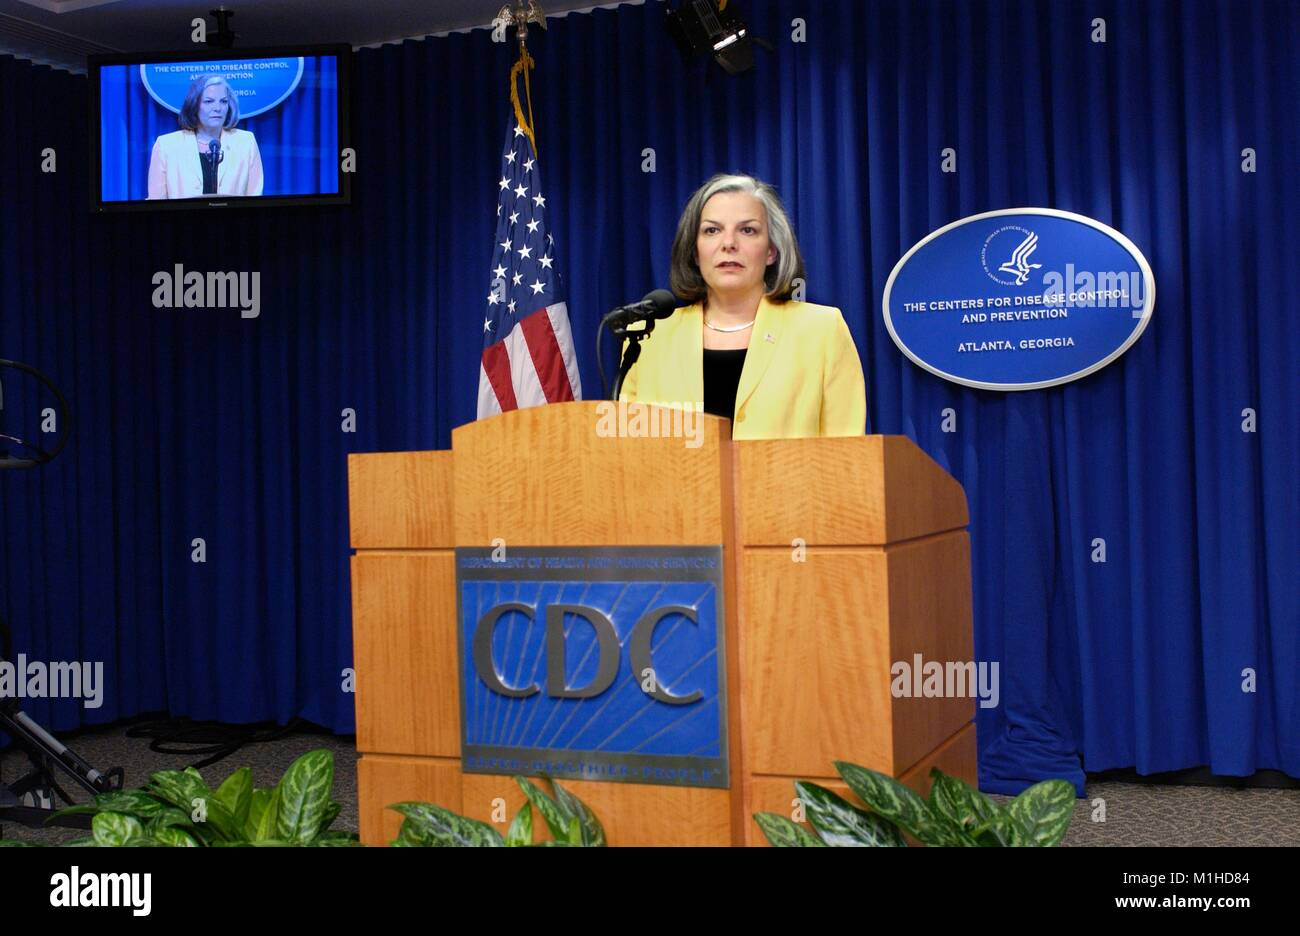 A photograph showing Julie Gerberding, a former CDC director, speaking at a news conference regarding current public - Stock Image